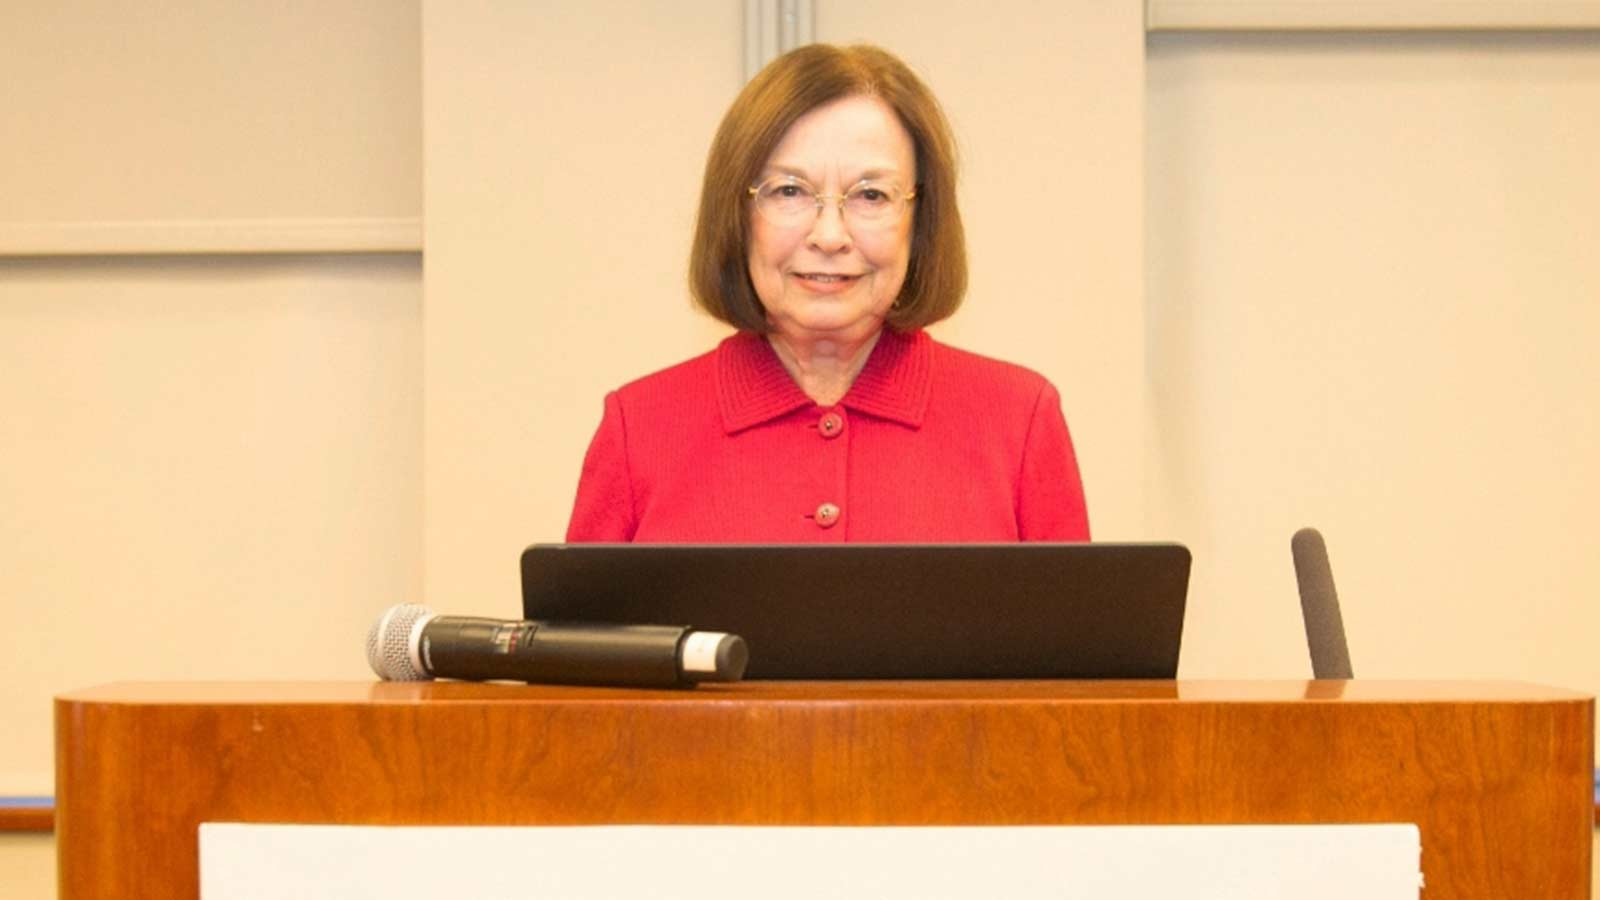 Gail McCain from the School of Nursing